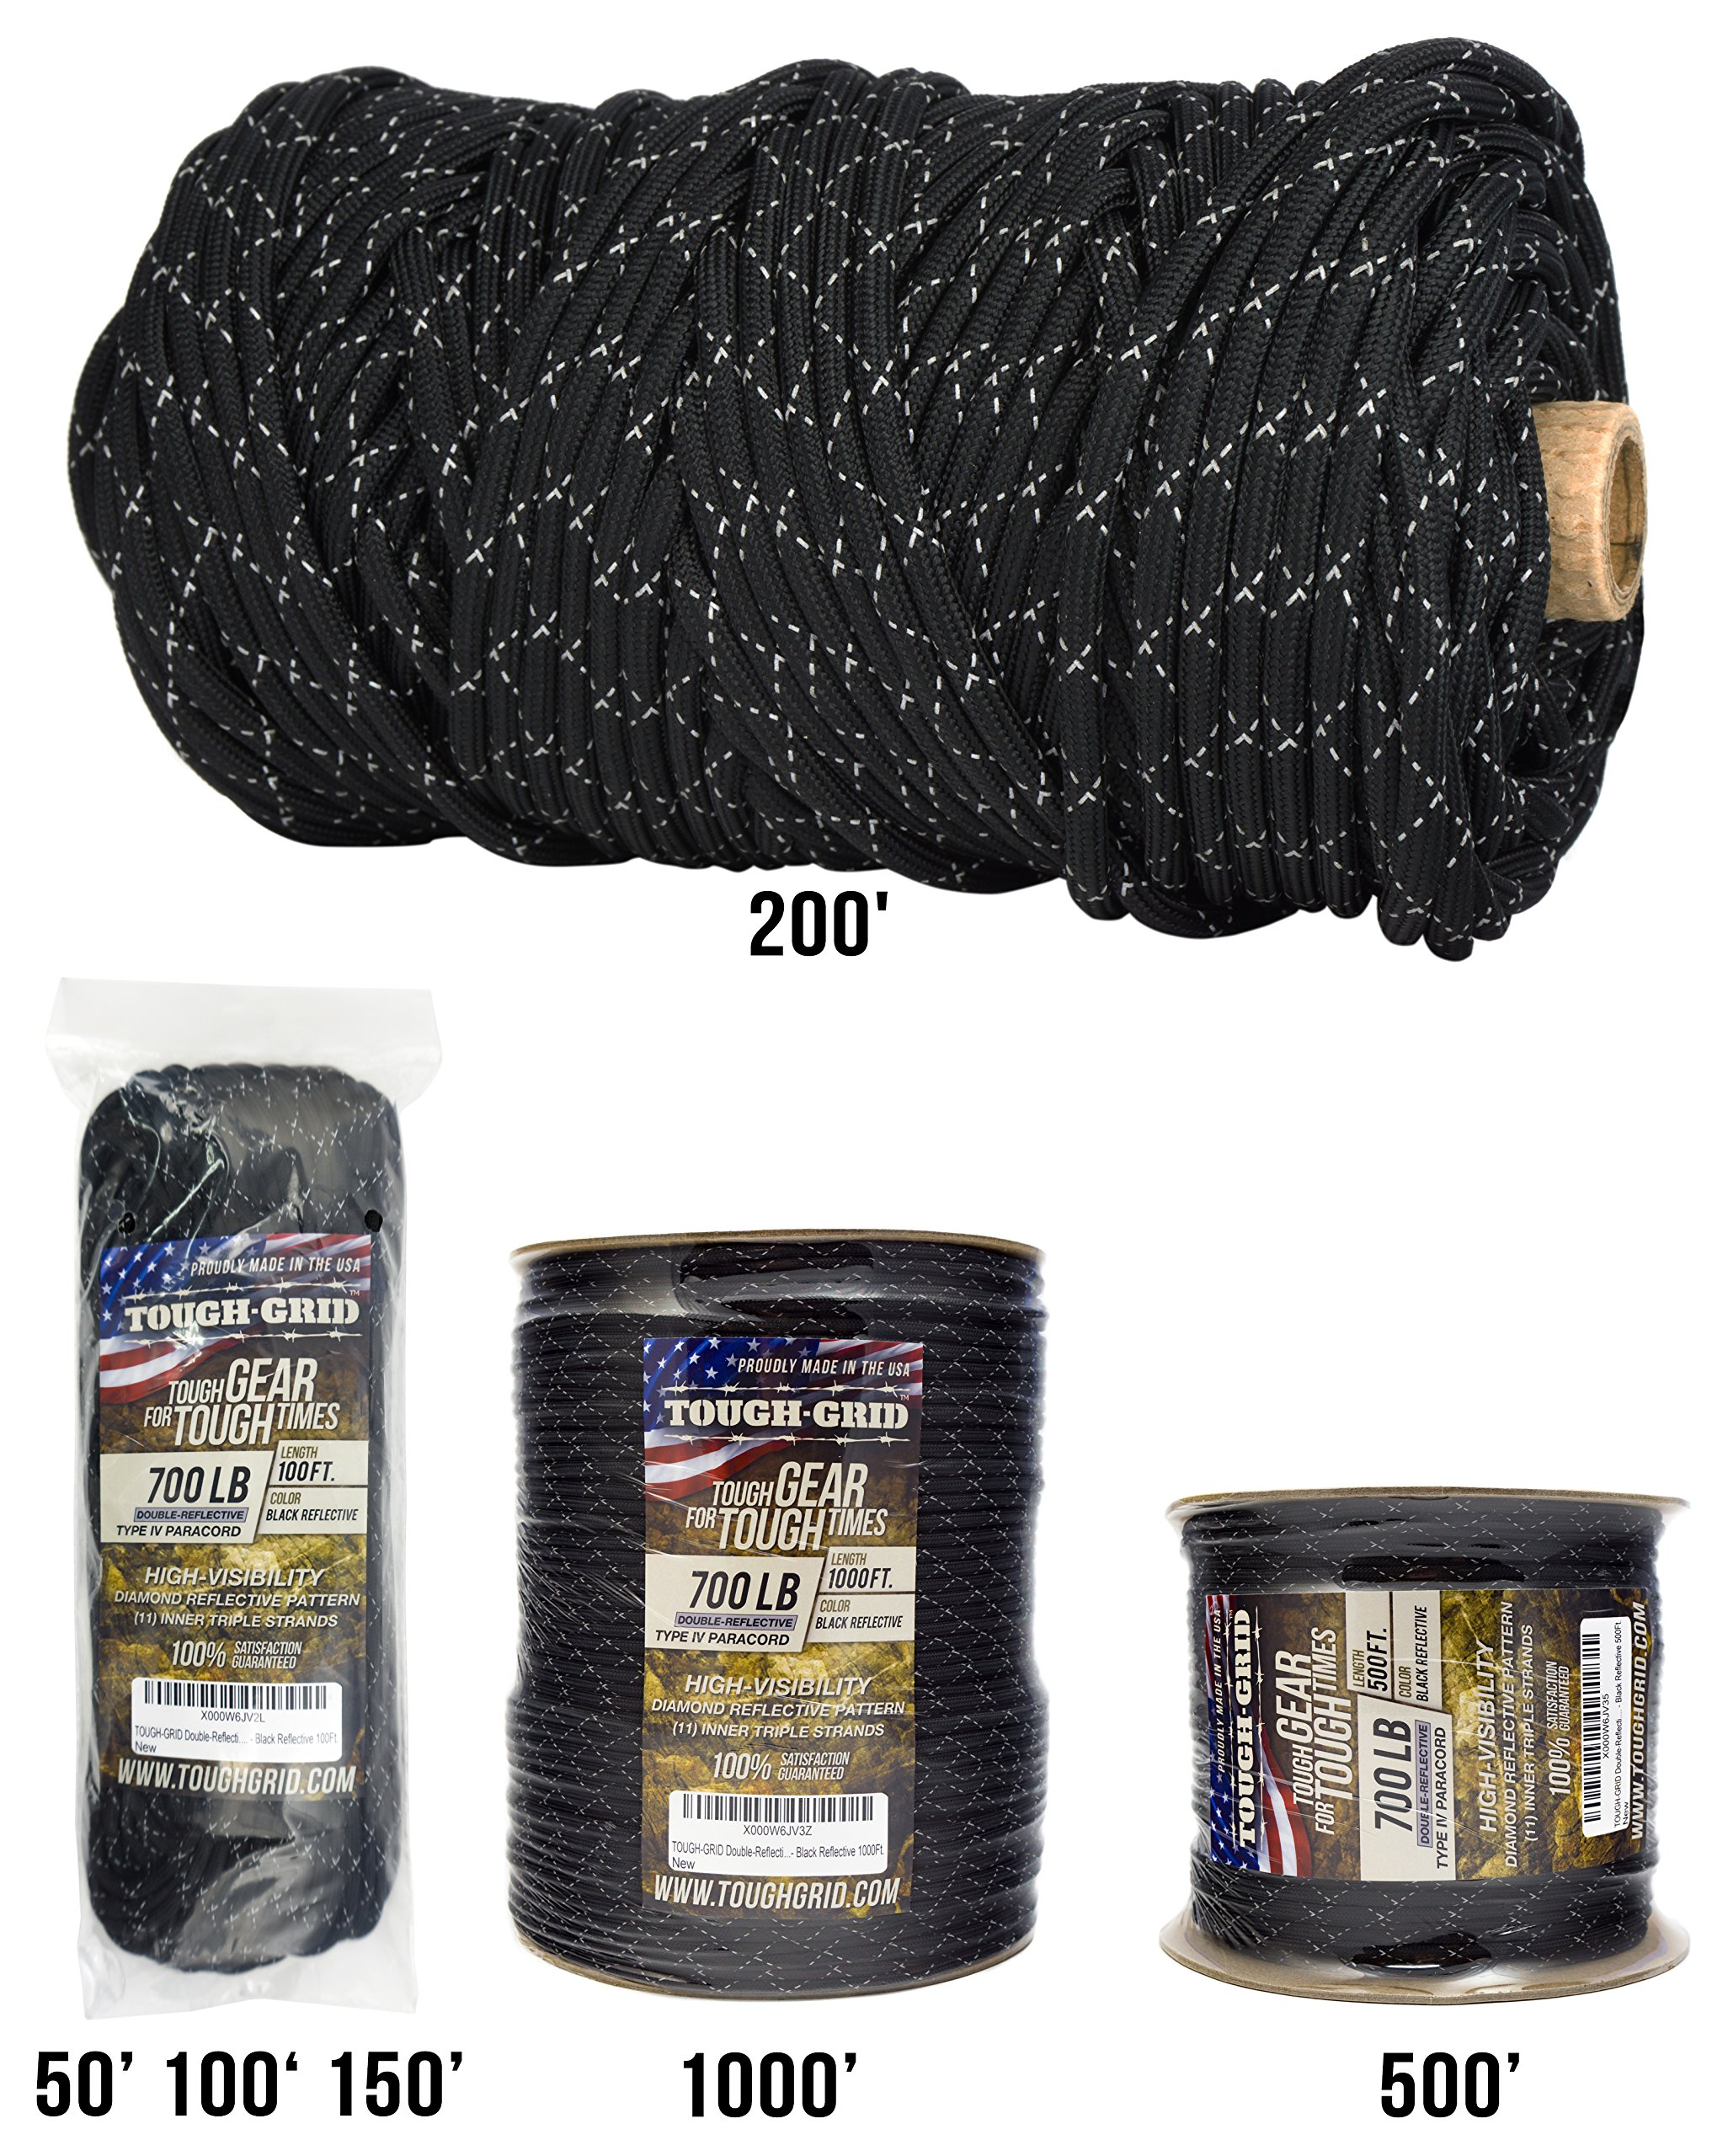 TOUGH-GRID New 700lb Double-Reflective Paracord/Parachute Cord - 2 Vibrant Retro-Reflective Strands for The Ultimate High-Visibility Cord - 100% Nylon - Made in USA. - 100Ft. Black Reflective by TOUGH-GRID (Image #1)